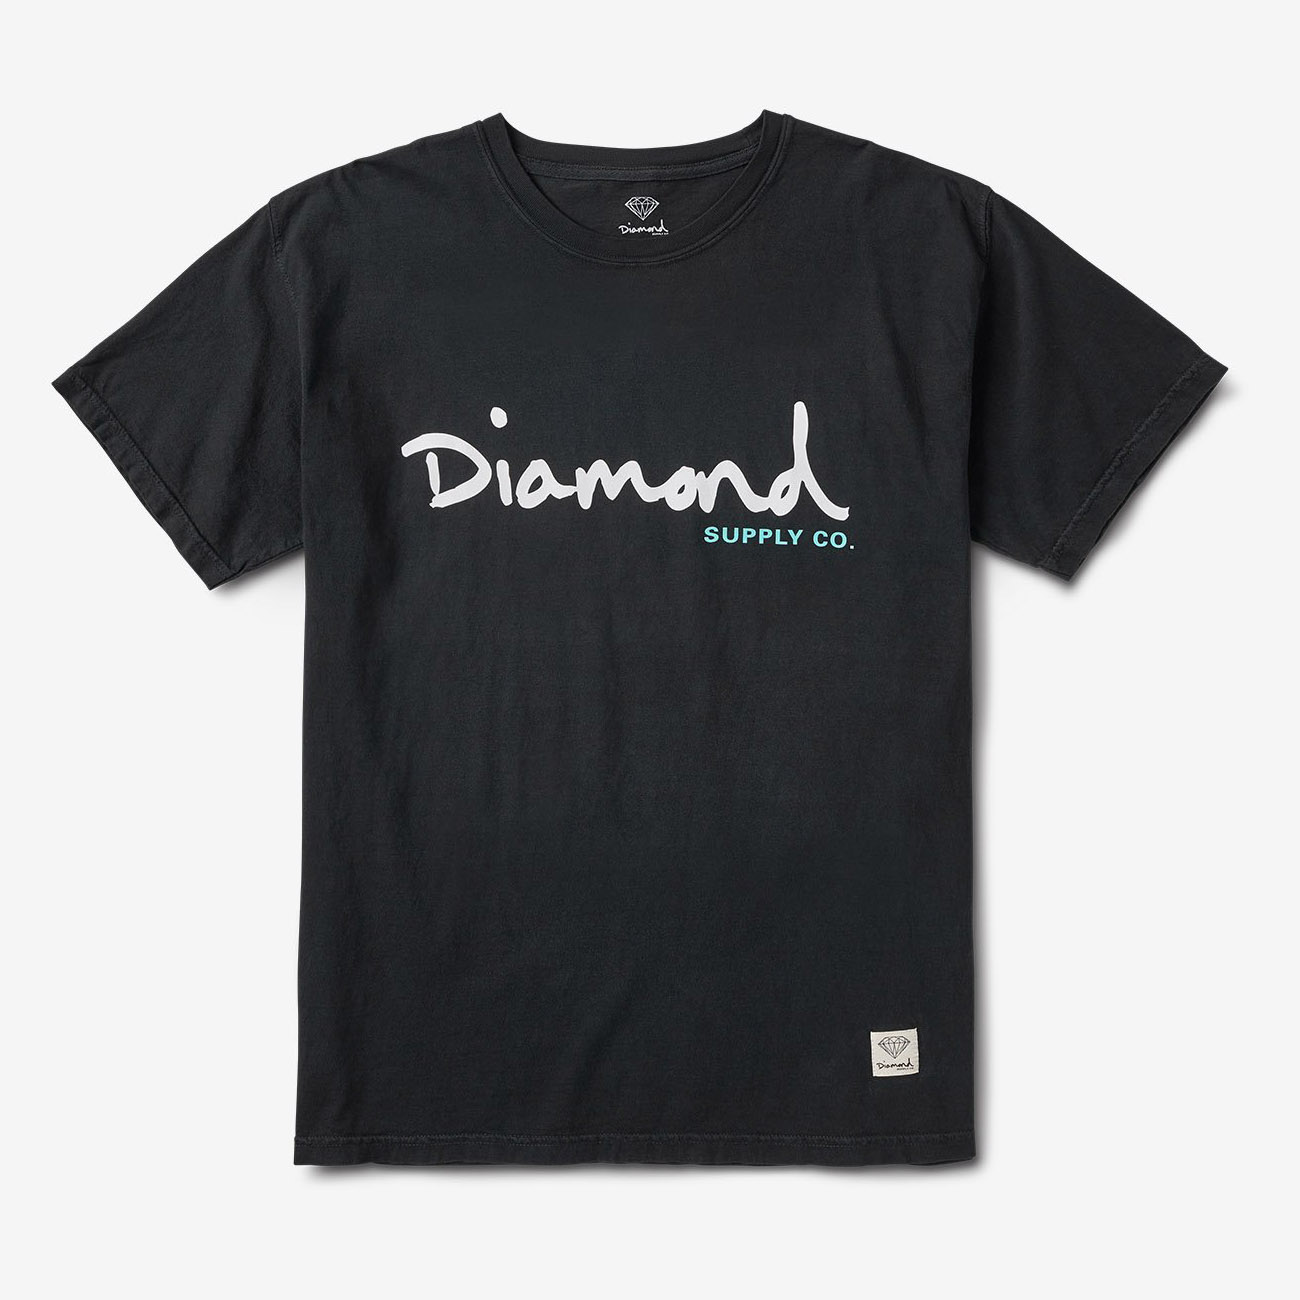 DMD TEE OG SCRPT OVERDYE BK L - Click to enlarge